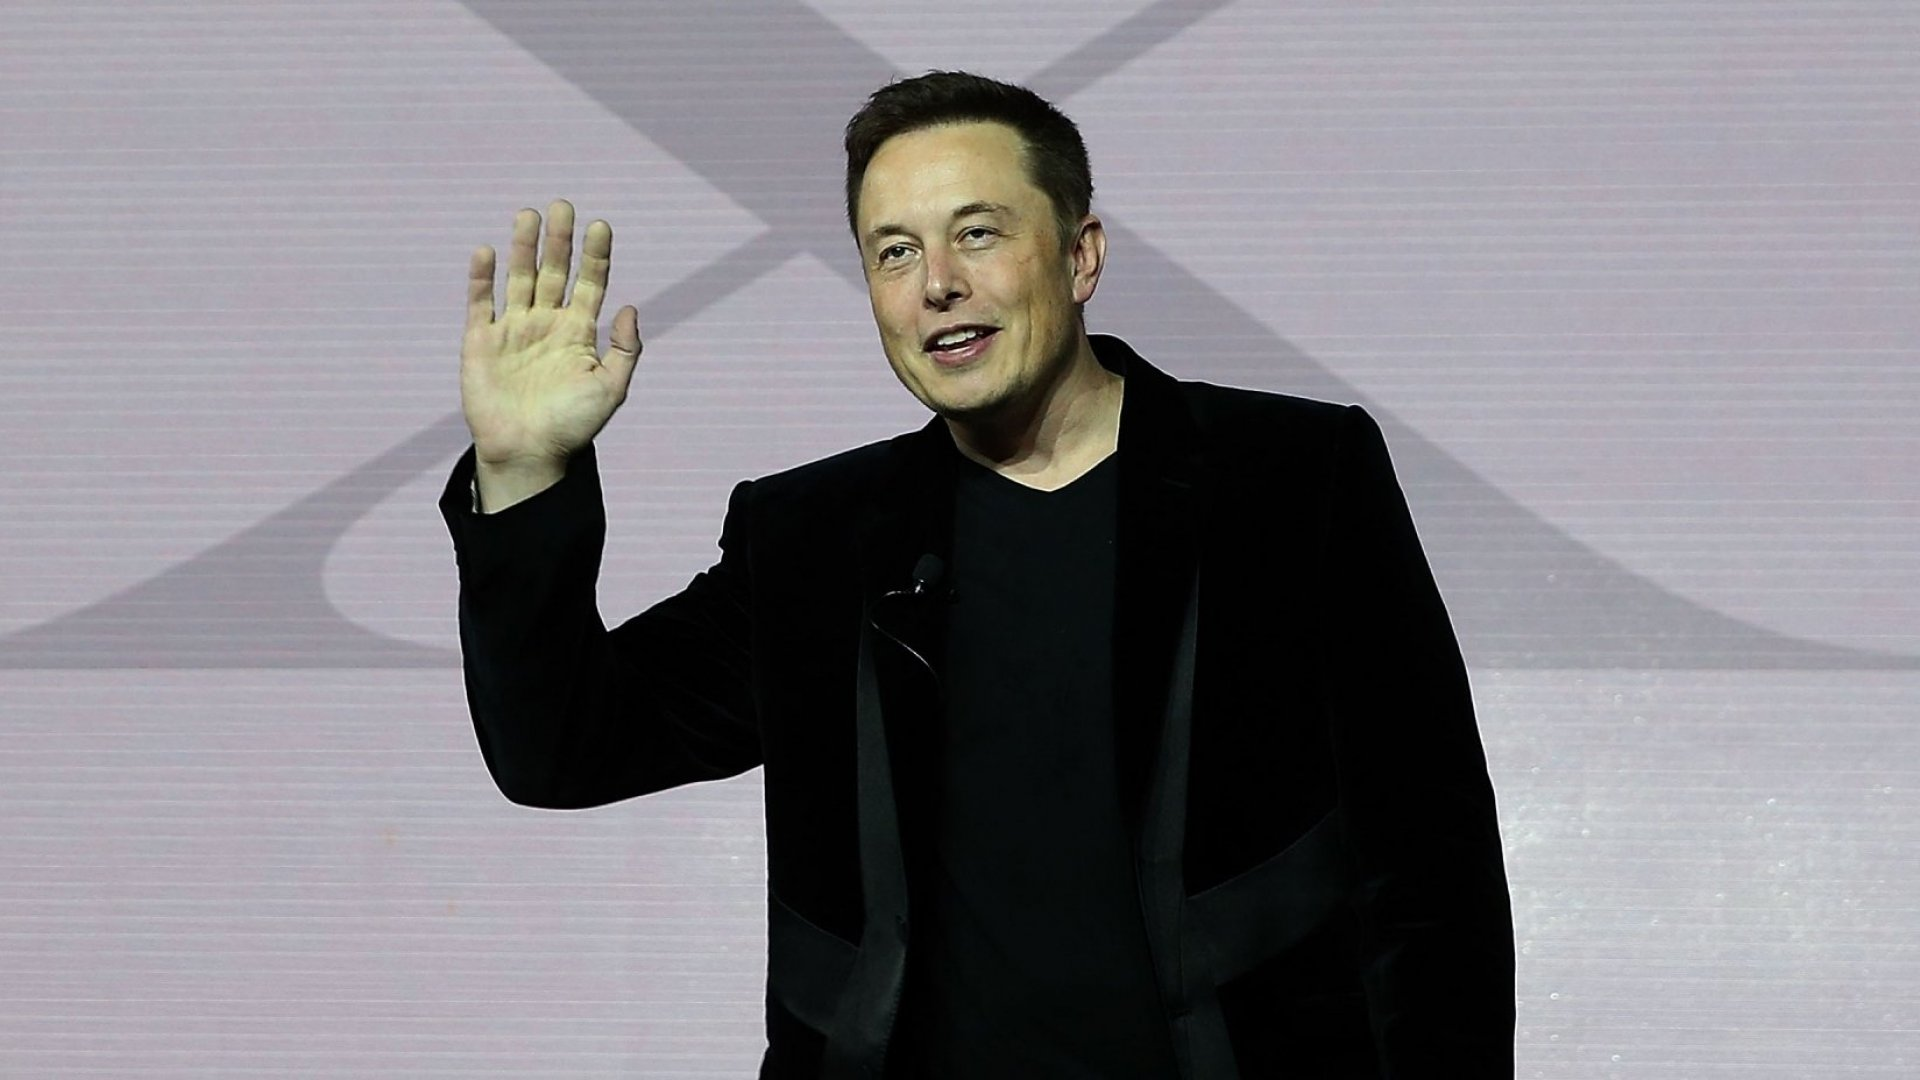 That Elon Musk Advice to Just Walk Out of Unproductive Meetings Sounds Great But Is Actually Career Suicide